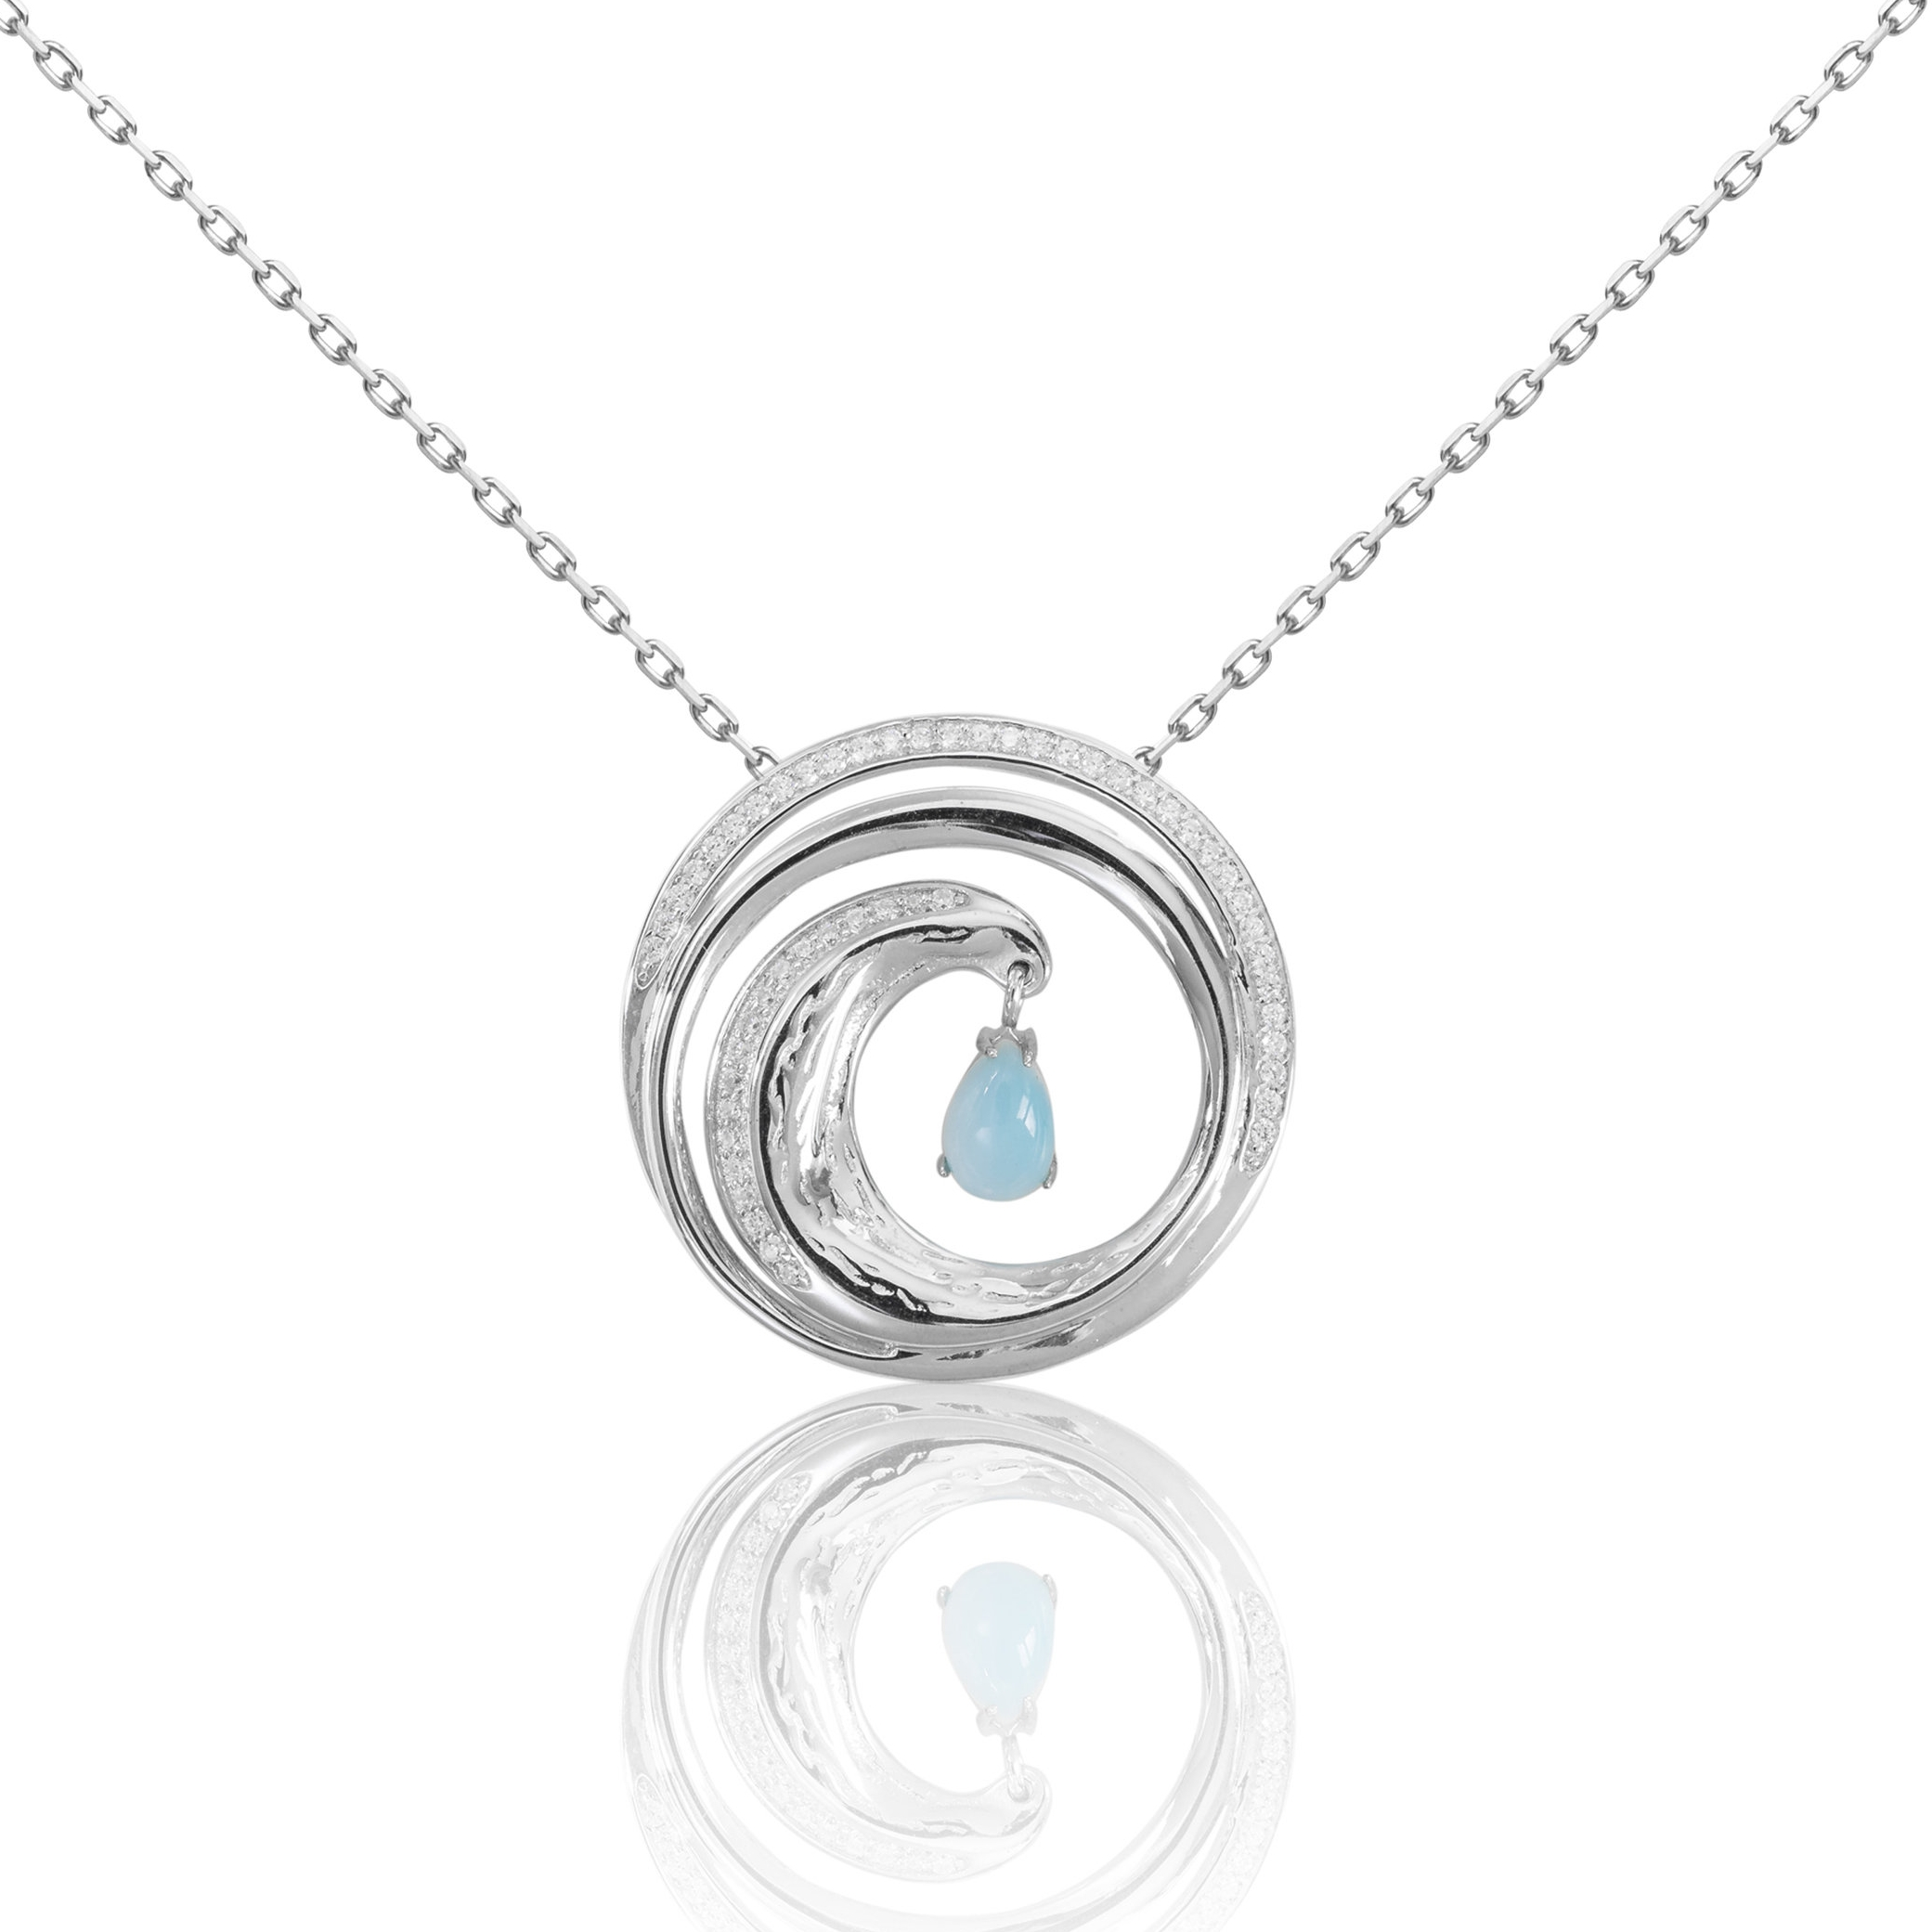 LIP1006 - circular wave tear drop pendant-chained.jpg